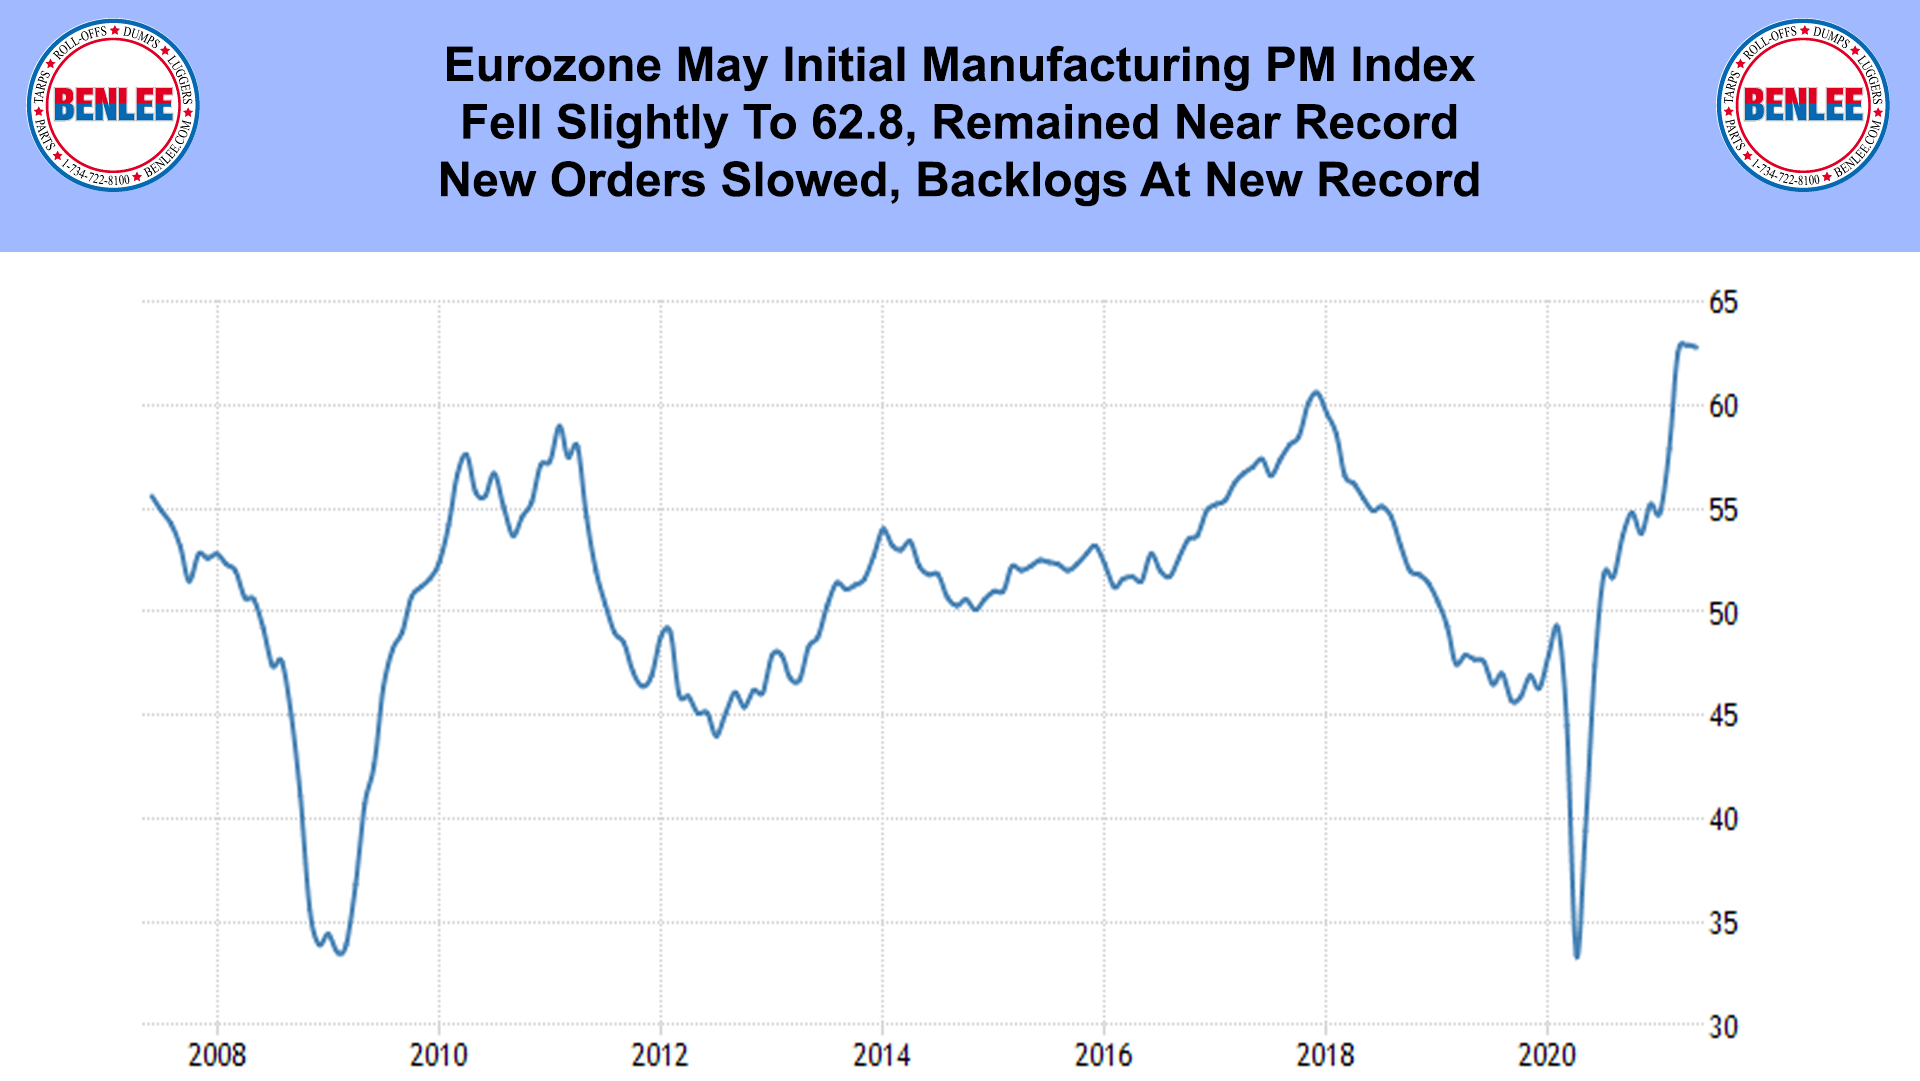 Eurozone May Initial Manufacturing PM Index